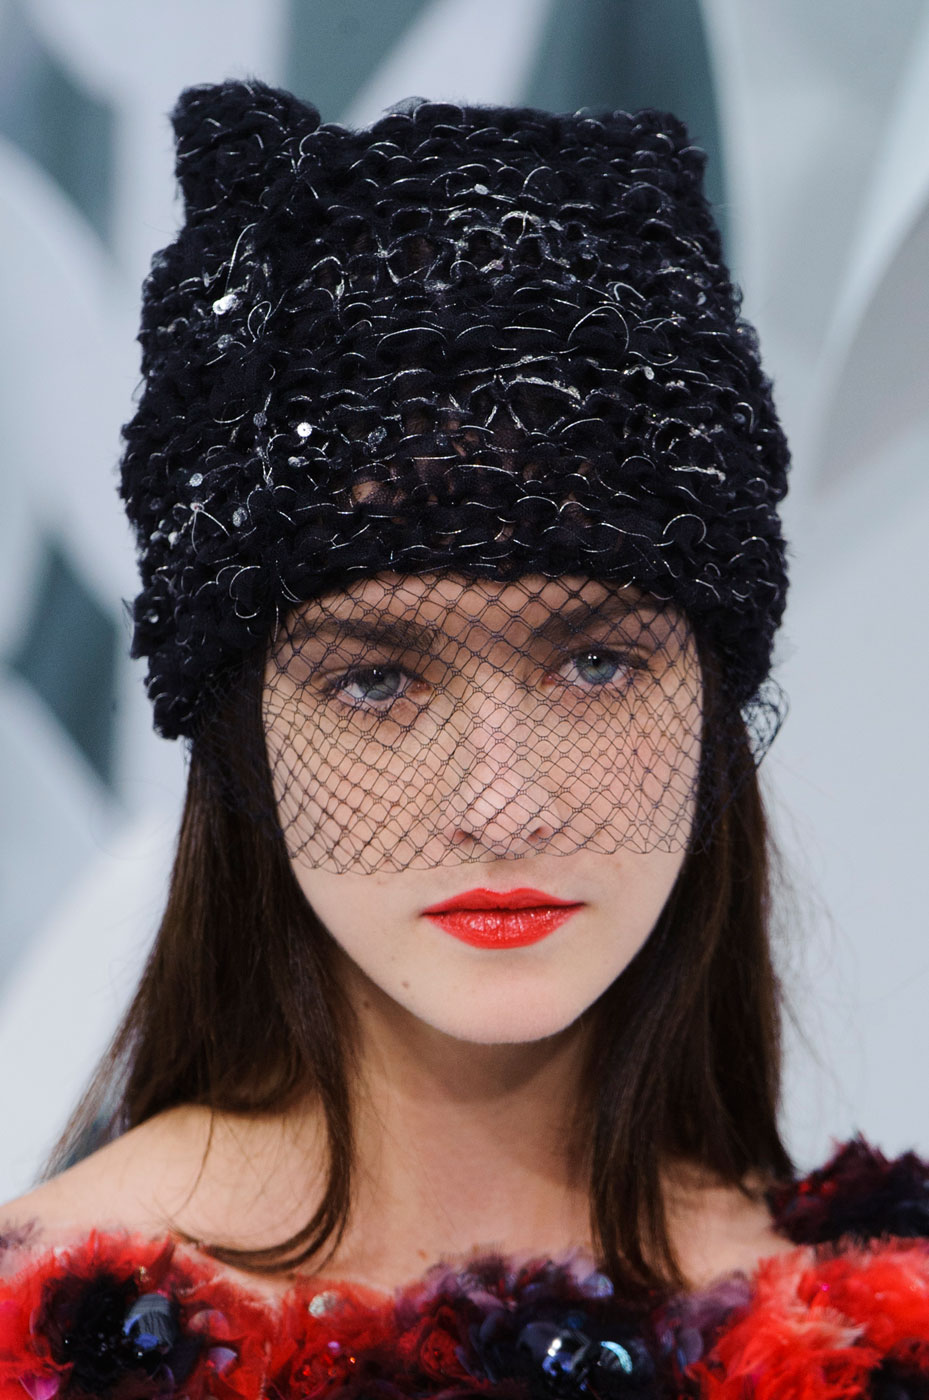 Chanel-fashion-runway-show-close-ups-haute-couture-paris-spring-summer-2015-the-impression-072